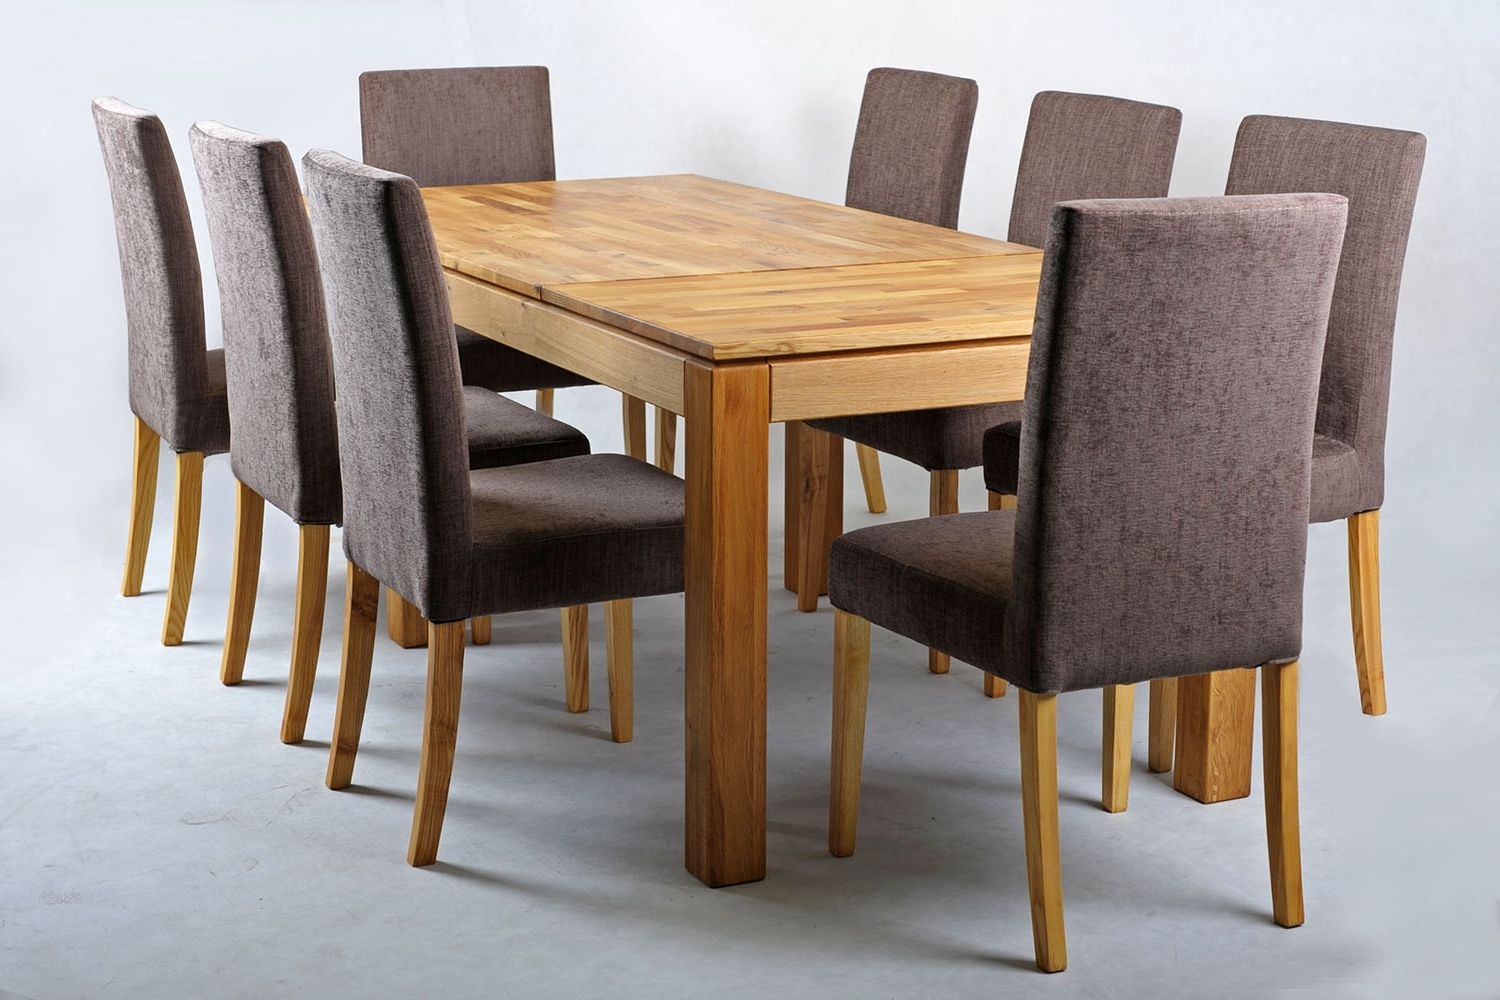 Extendable Dining Tables 6 Chairs with regard to Famous Solid Oak Extending Dining Table And Chairs Set, Dining Table And